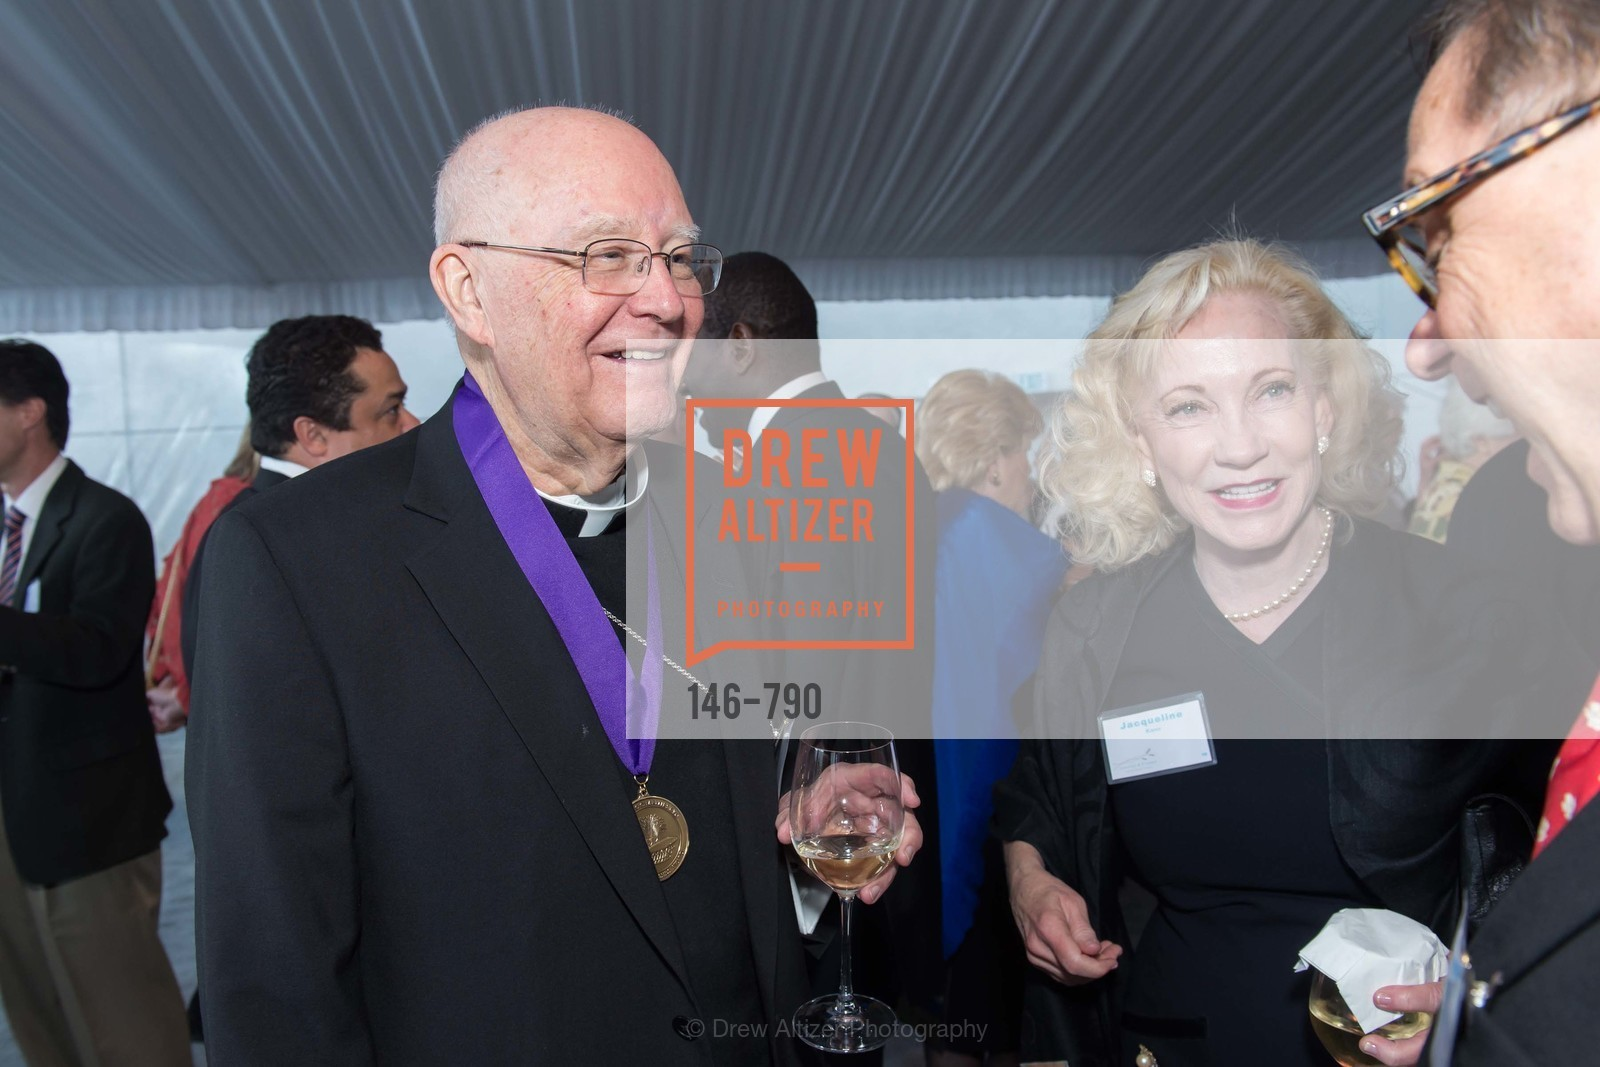 Father George Nieberauer, Jacqueline Kane, Post War and Contemporary Preview at HEDGE GALLERY, US, April 15th, 2015,Drew Altizer, Drew Altizer Photography, full-service agency, private events, San Francisco photographer, photographer california